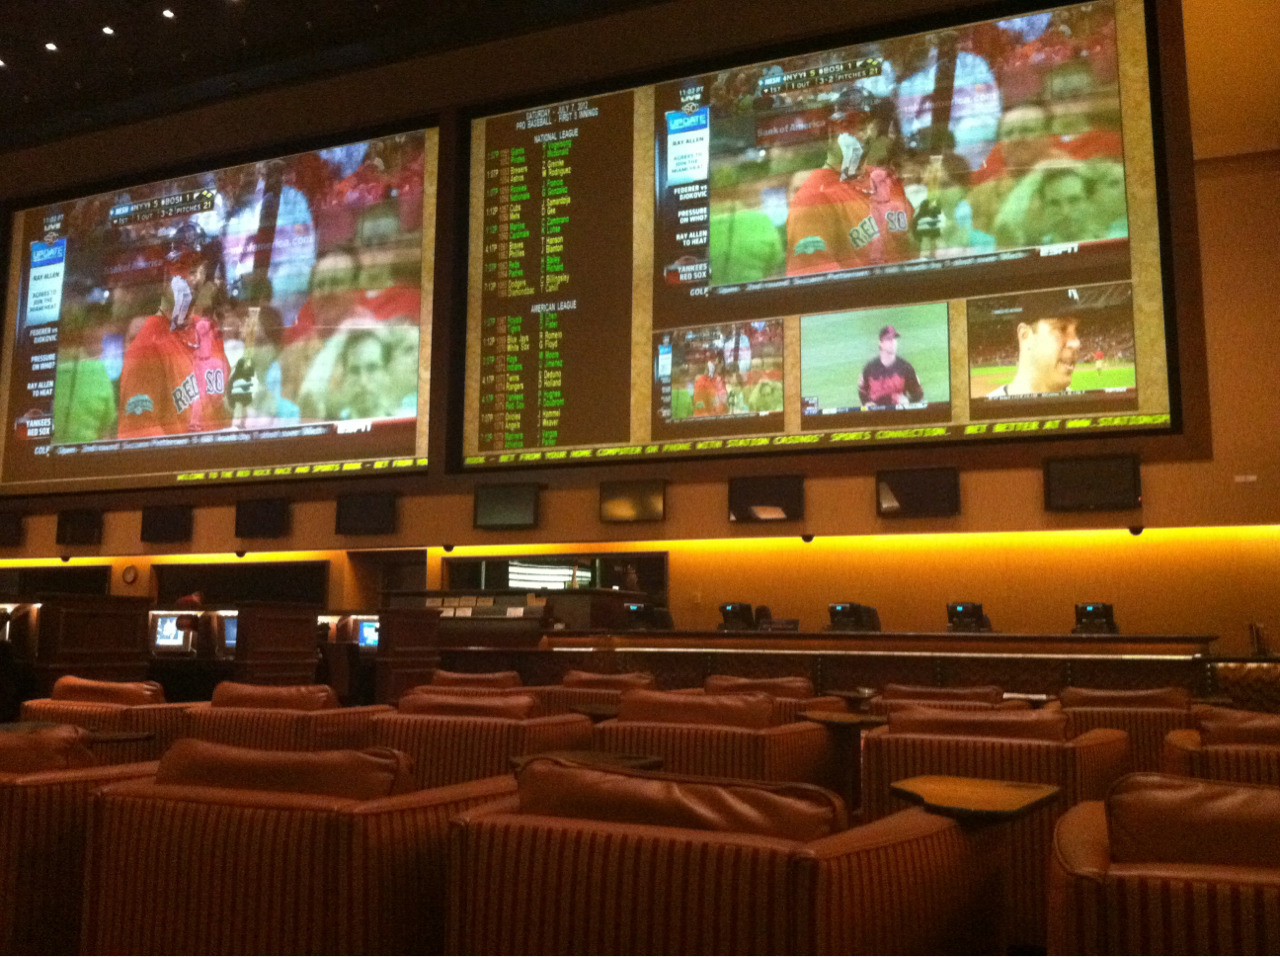 Late night at the Red Rock sportsbook. Chillin.